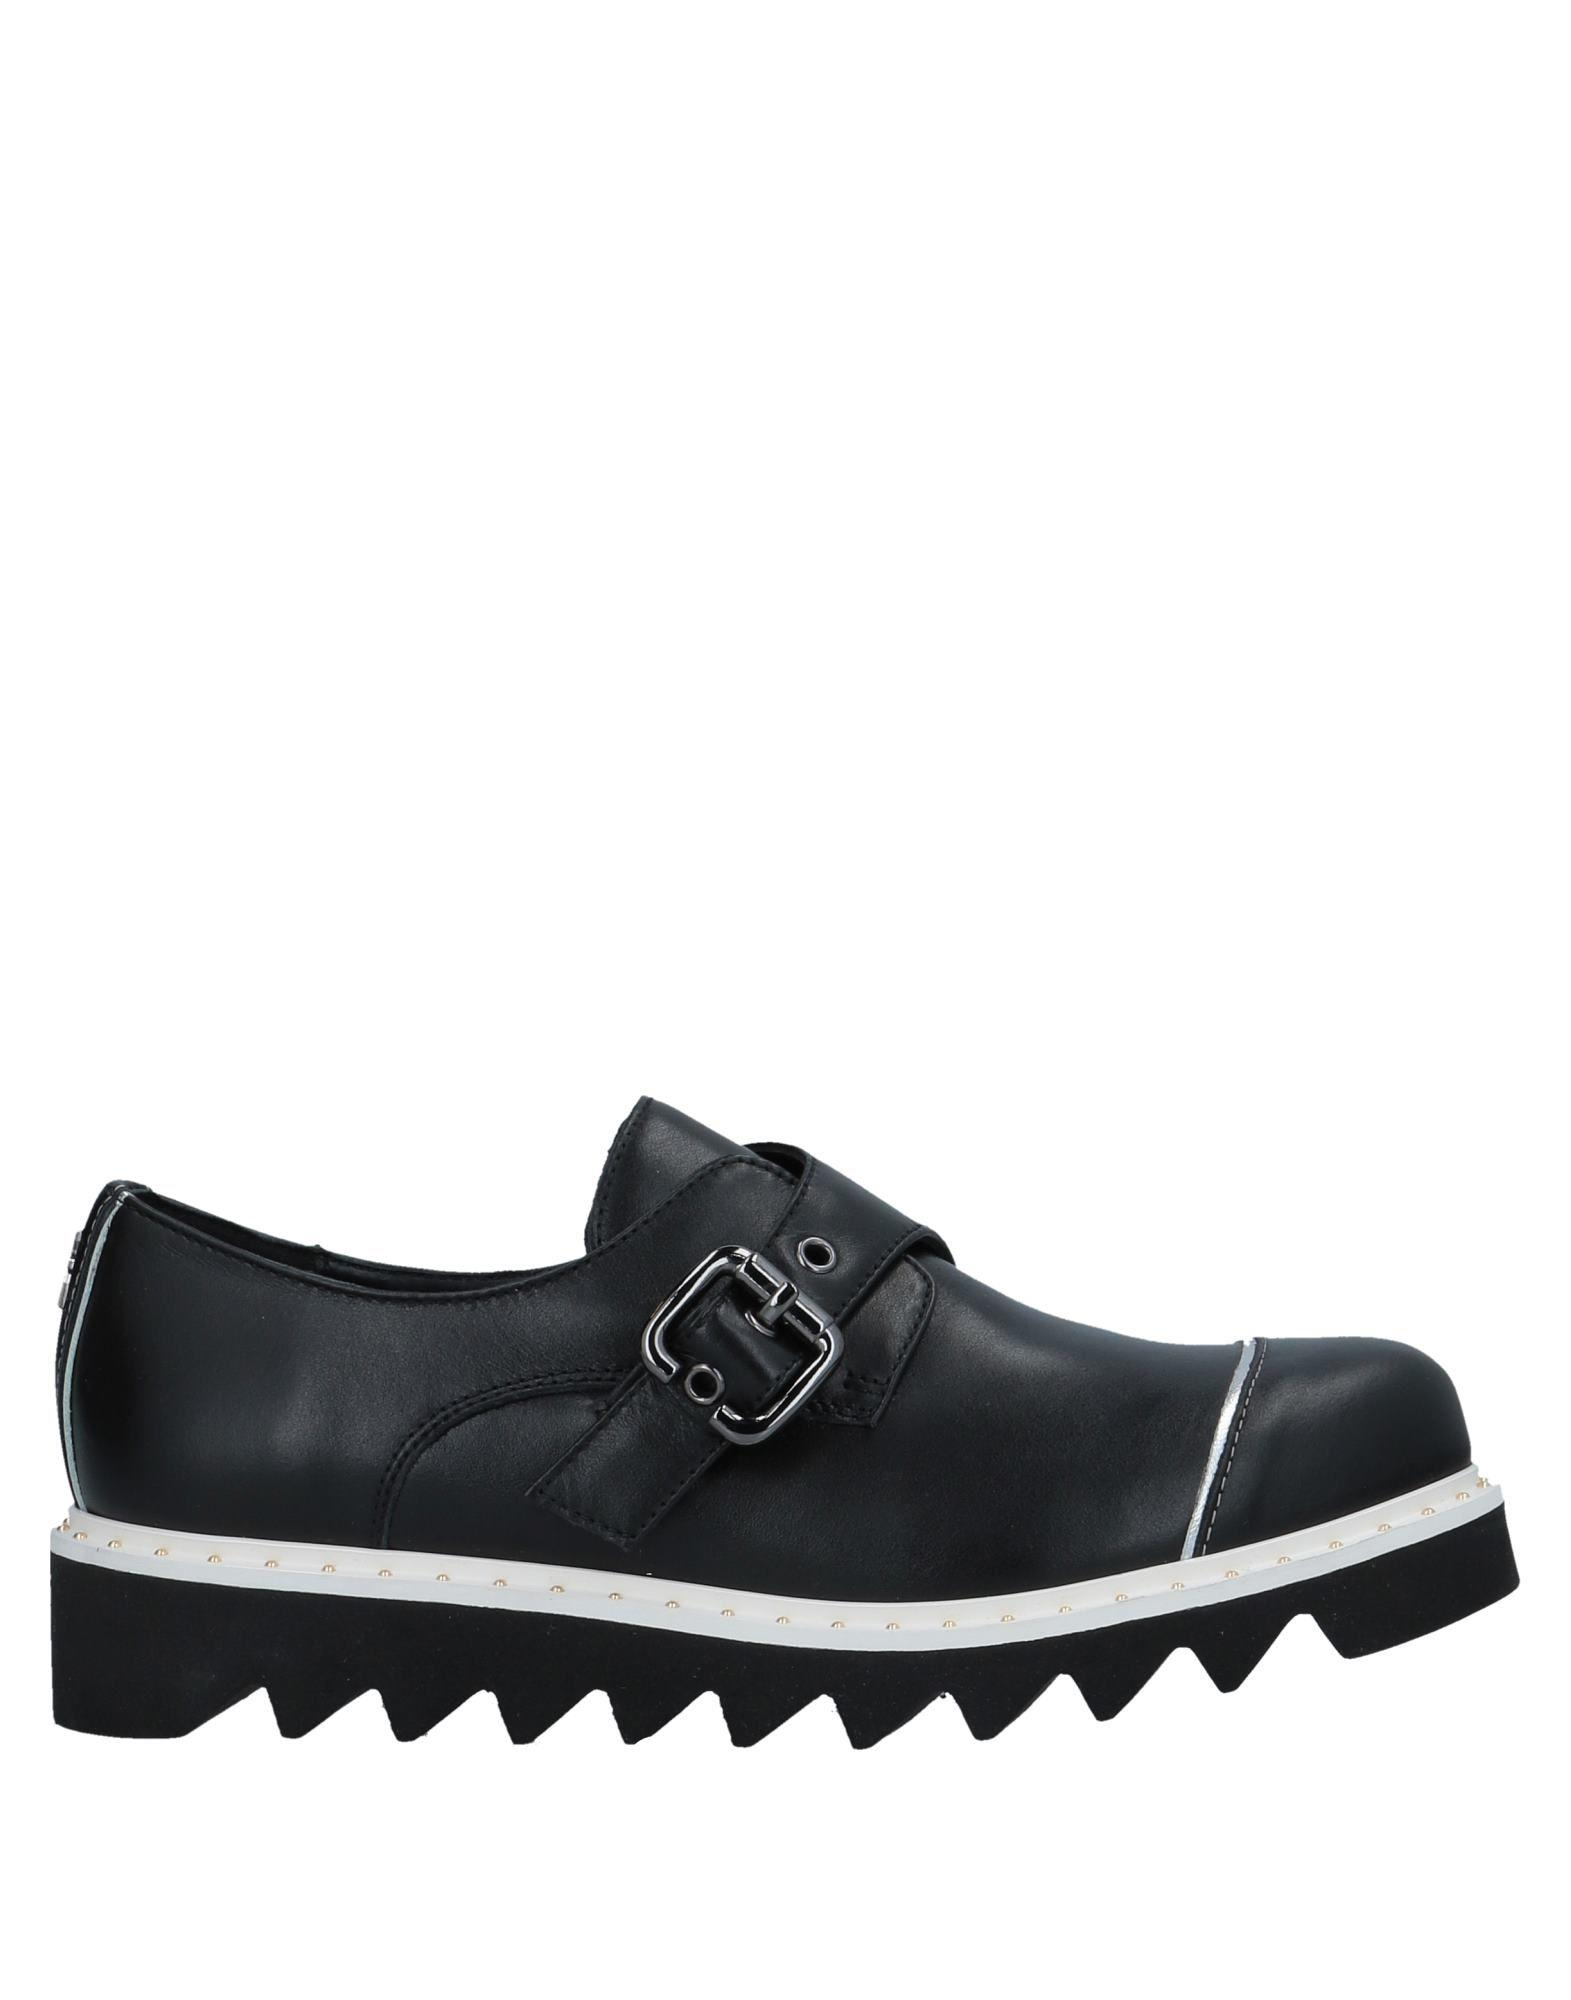 Lyst - Patrizia Pepe Loafer in Black 53fce519d04